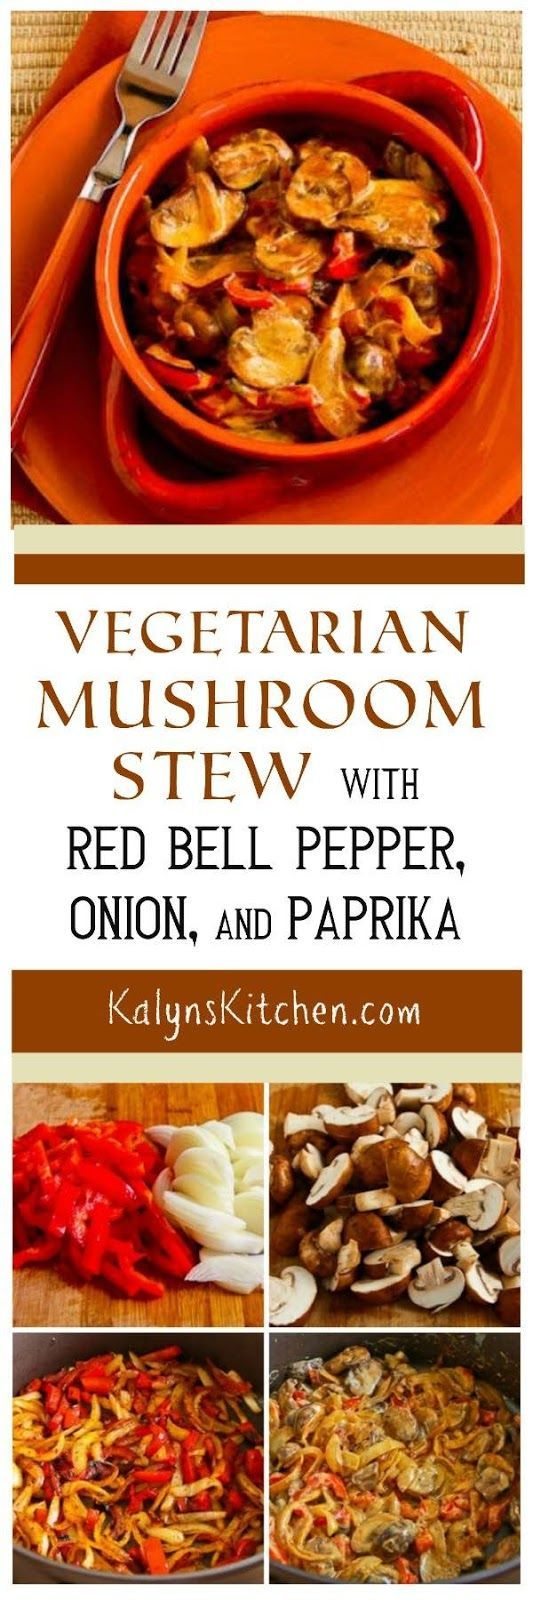 Vegetarian Mushroom Stew with Red Bell Pepper, Onion, and Paprika; this is actually a quick-cooking stovetop dish, but it feels like a stew, and it's delicious for a vegetarian meal that's low-carb, Keto, low-glycemic, gluten-free, and South Beach Diet friendly. [found on http://KalynsKitchen.com]